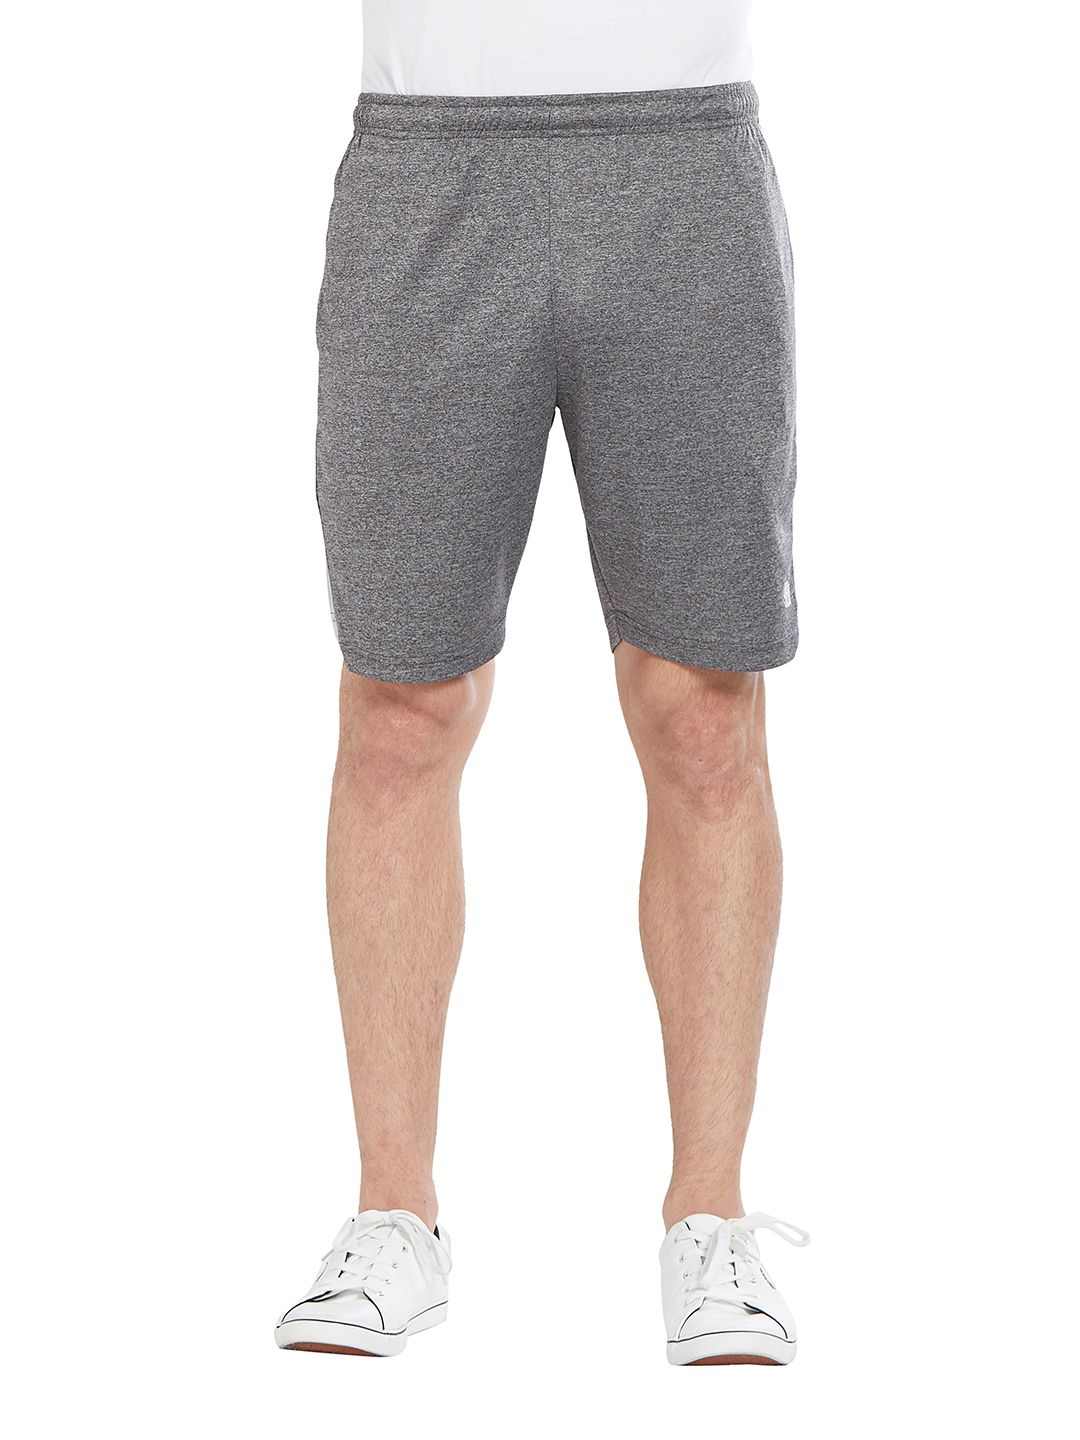 BONATY Light Grey 100% Polyester Solid  Shorts For Men